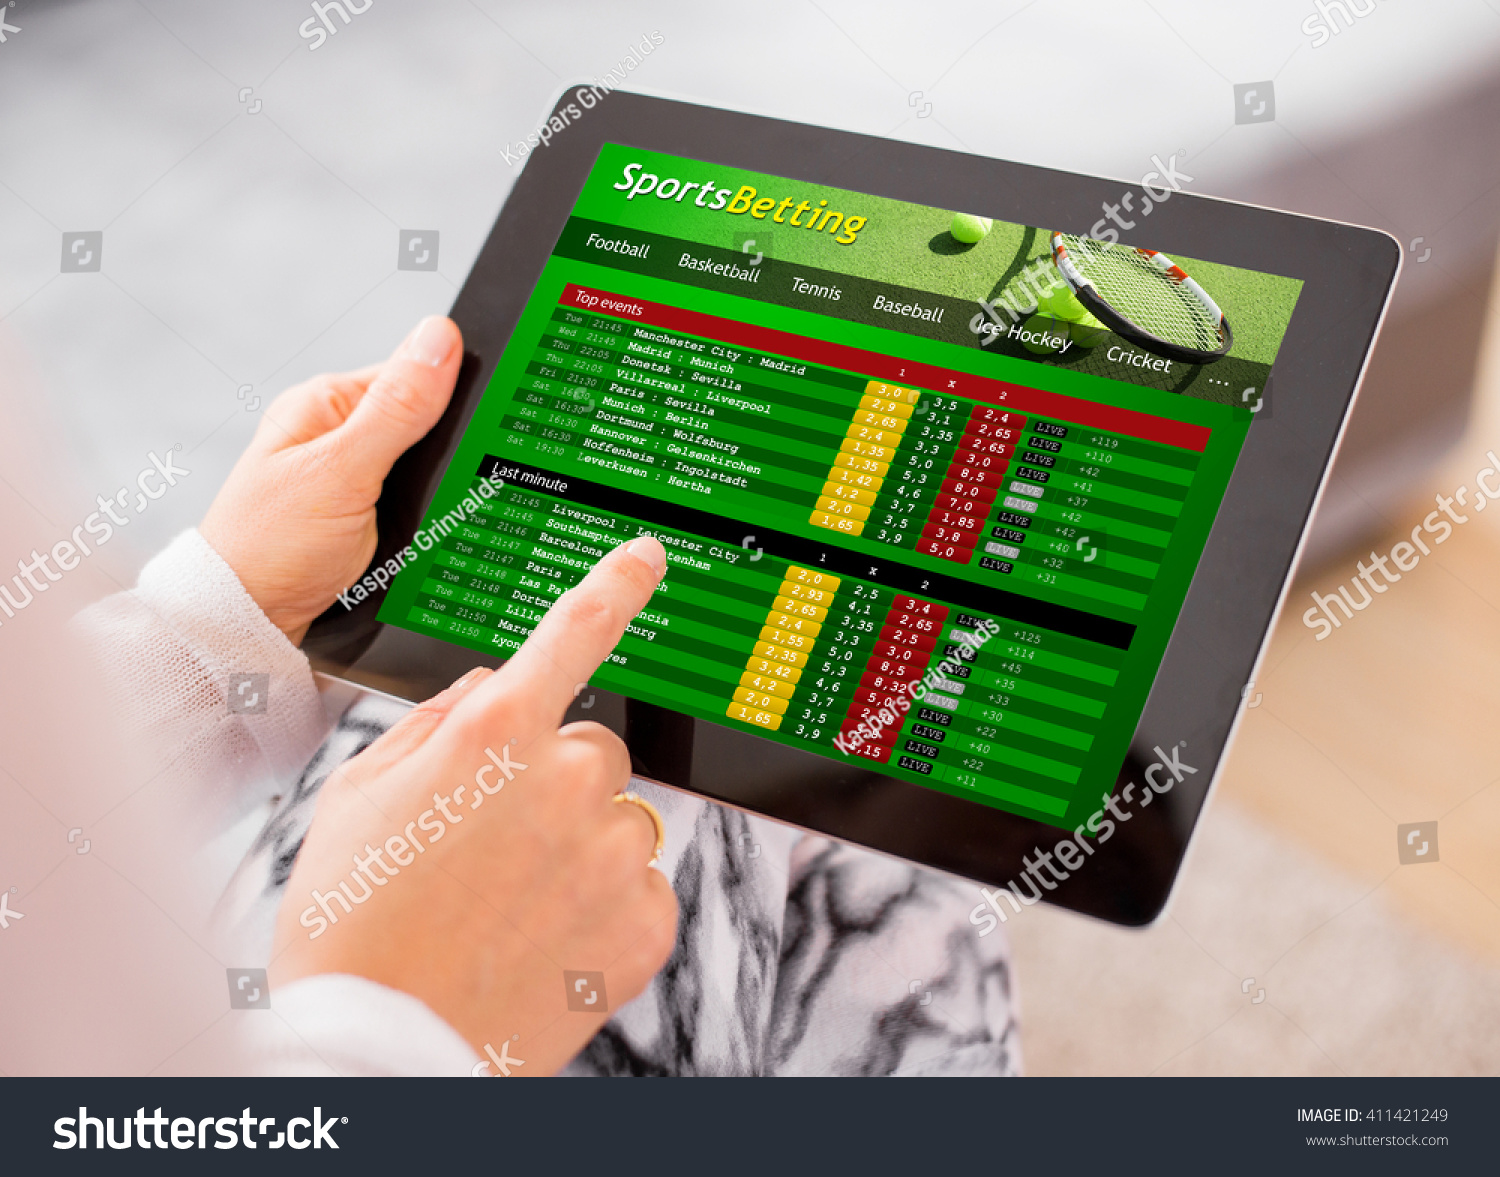 Sports betting app on tablet computer